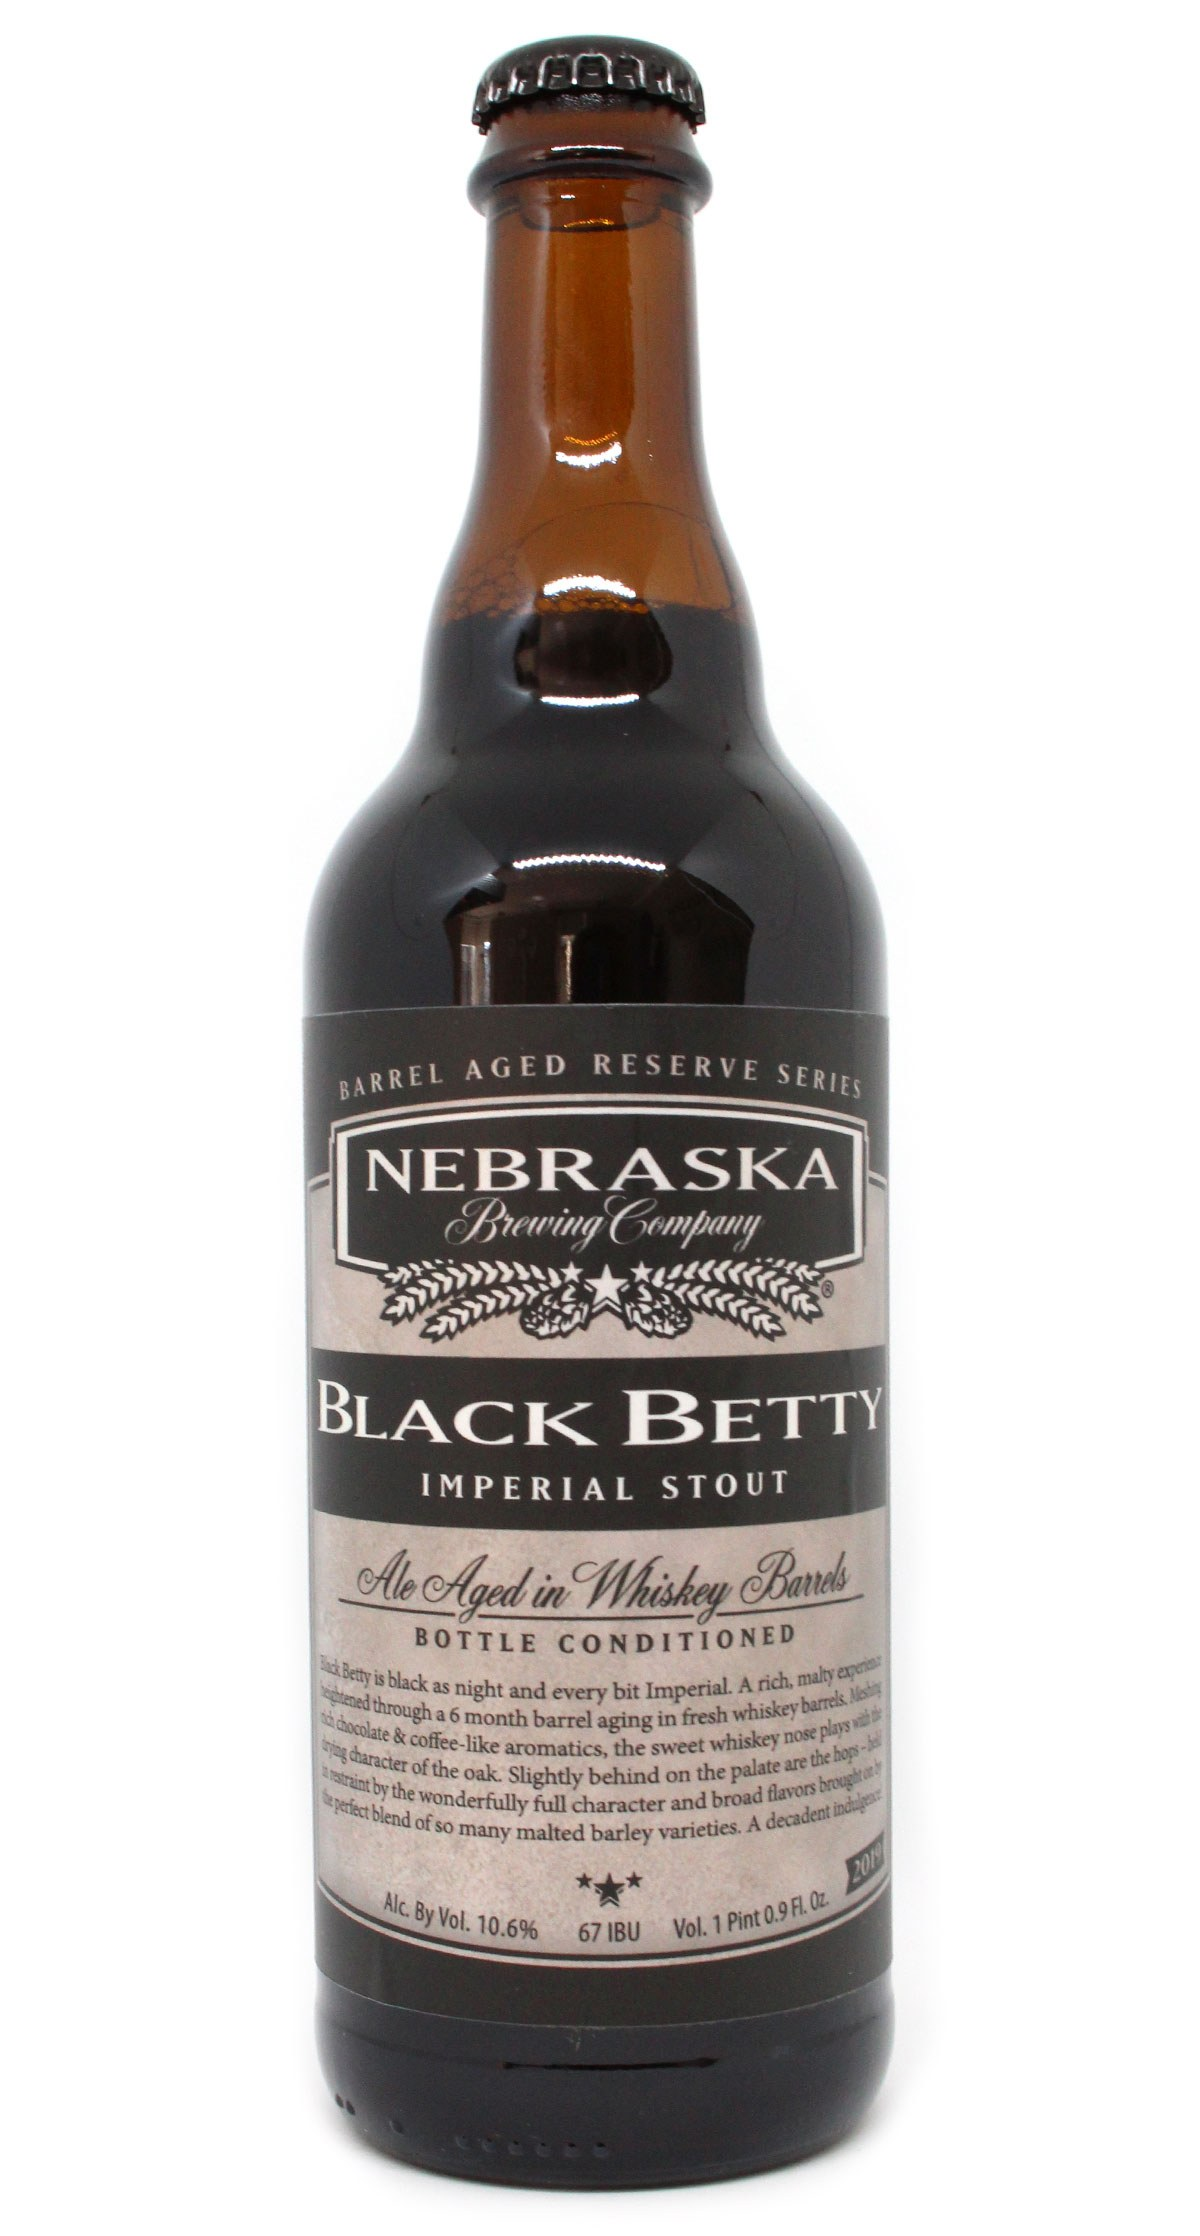 Black Betty Imperial Stout